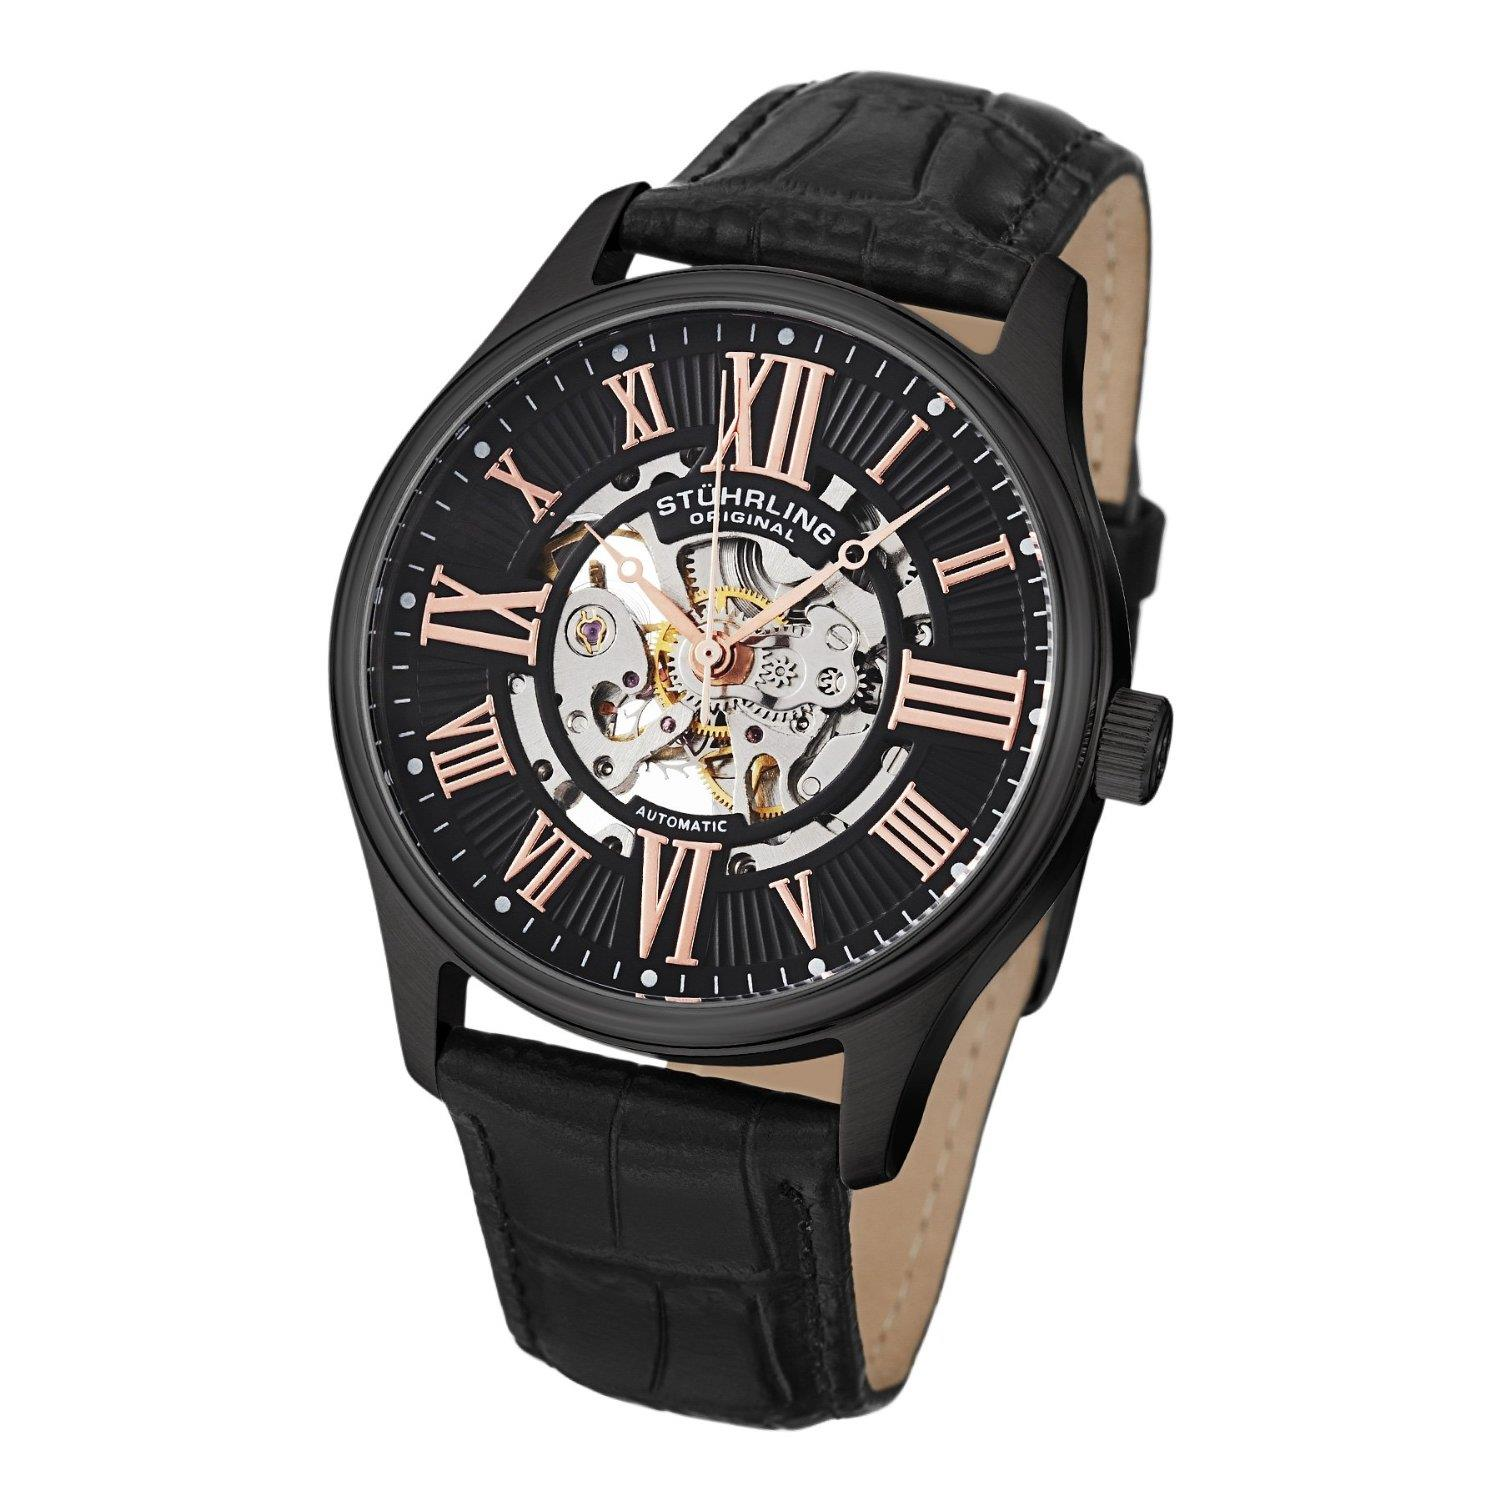 Stuhrling Skeleton watch 747.03